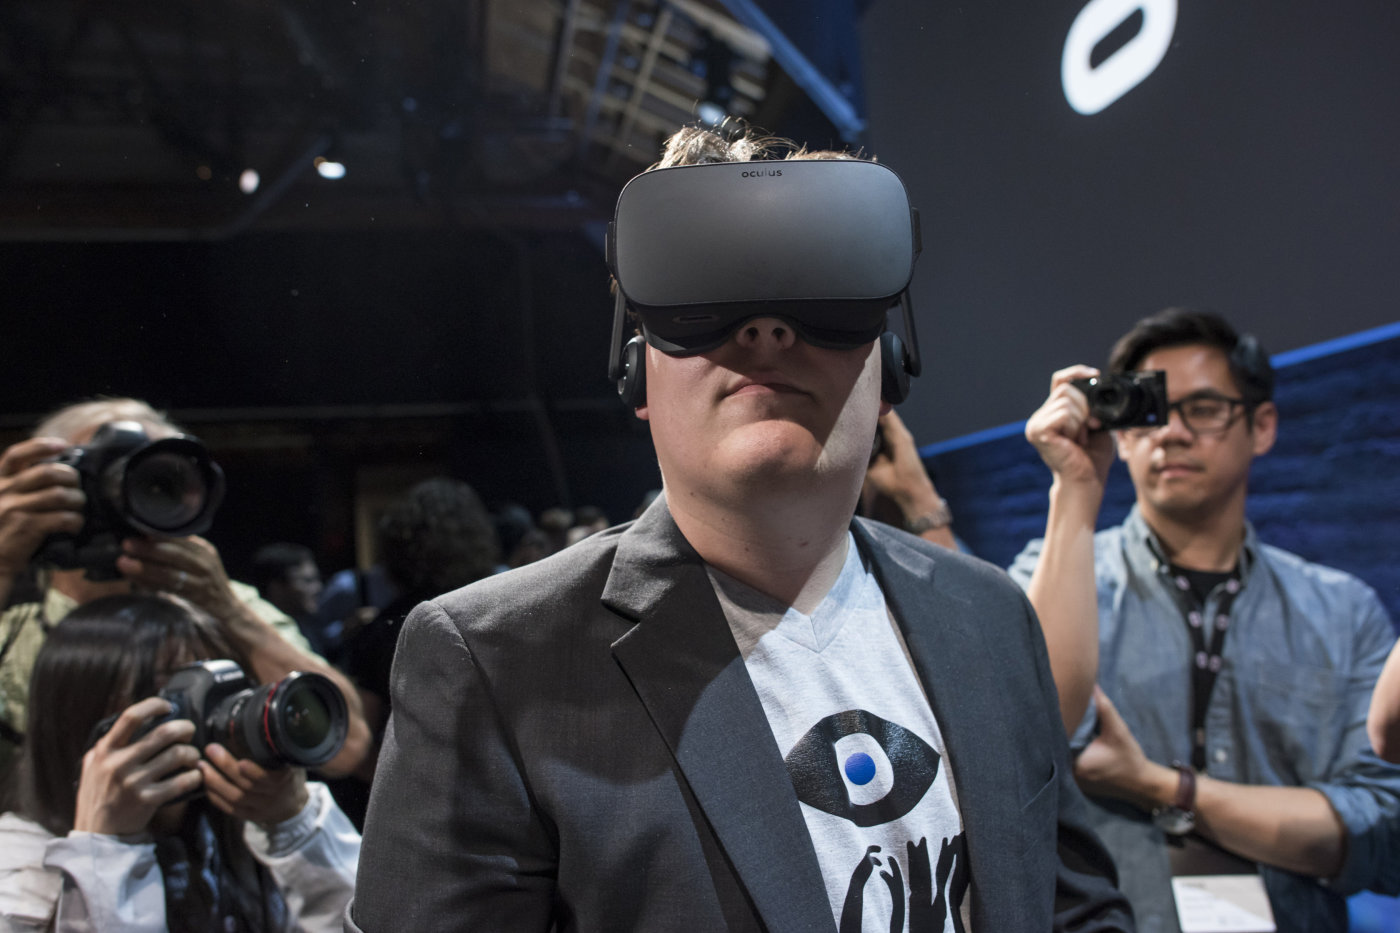 Oculus wants to help VR avatars look normal when they talk